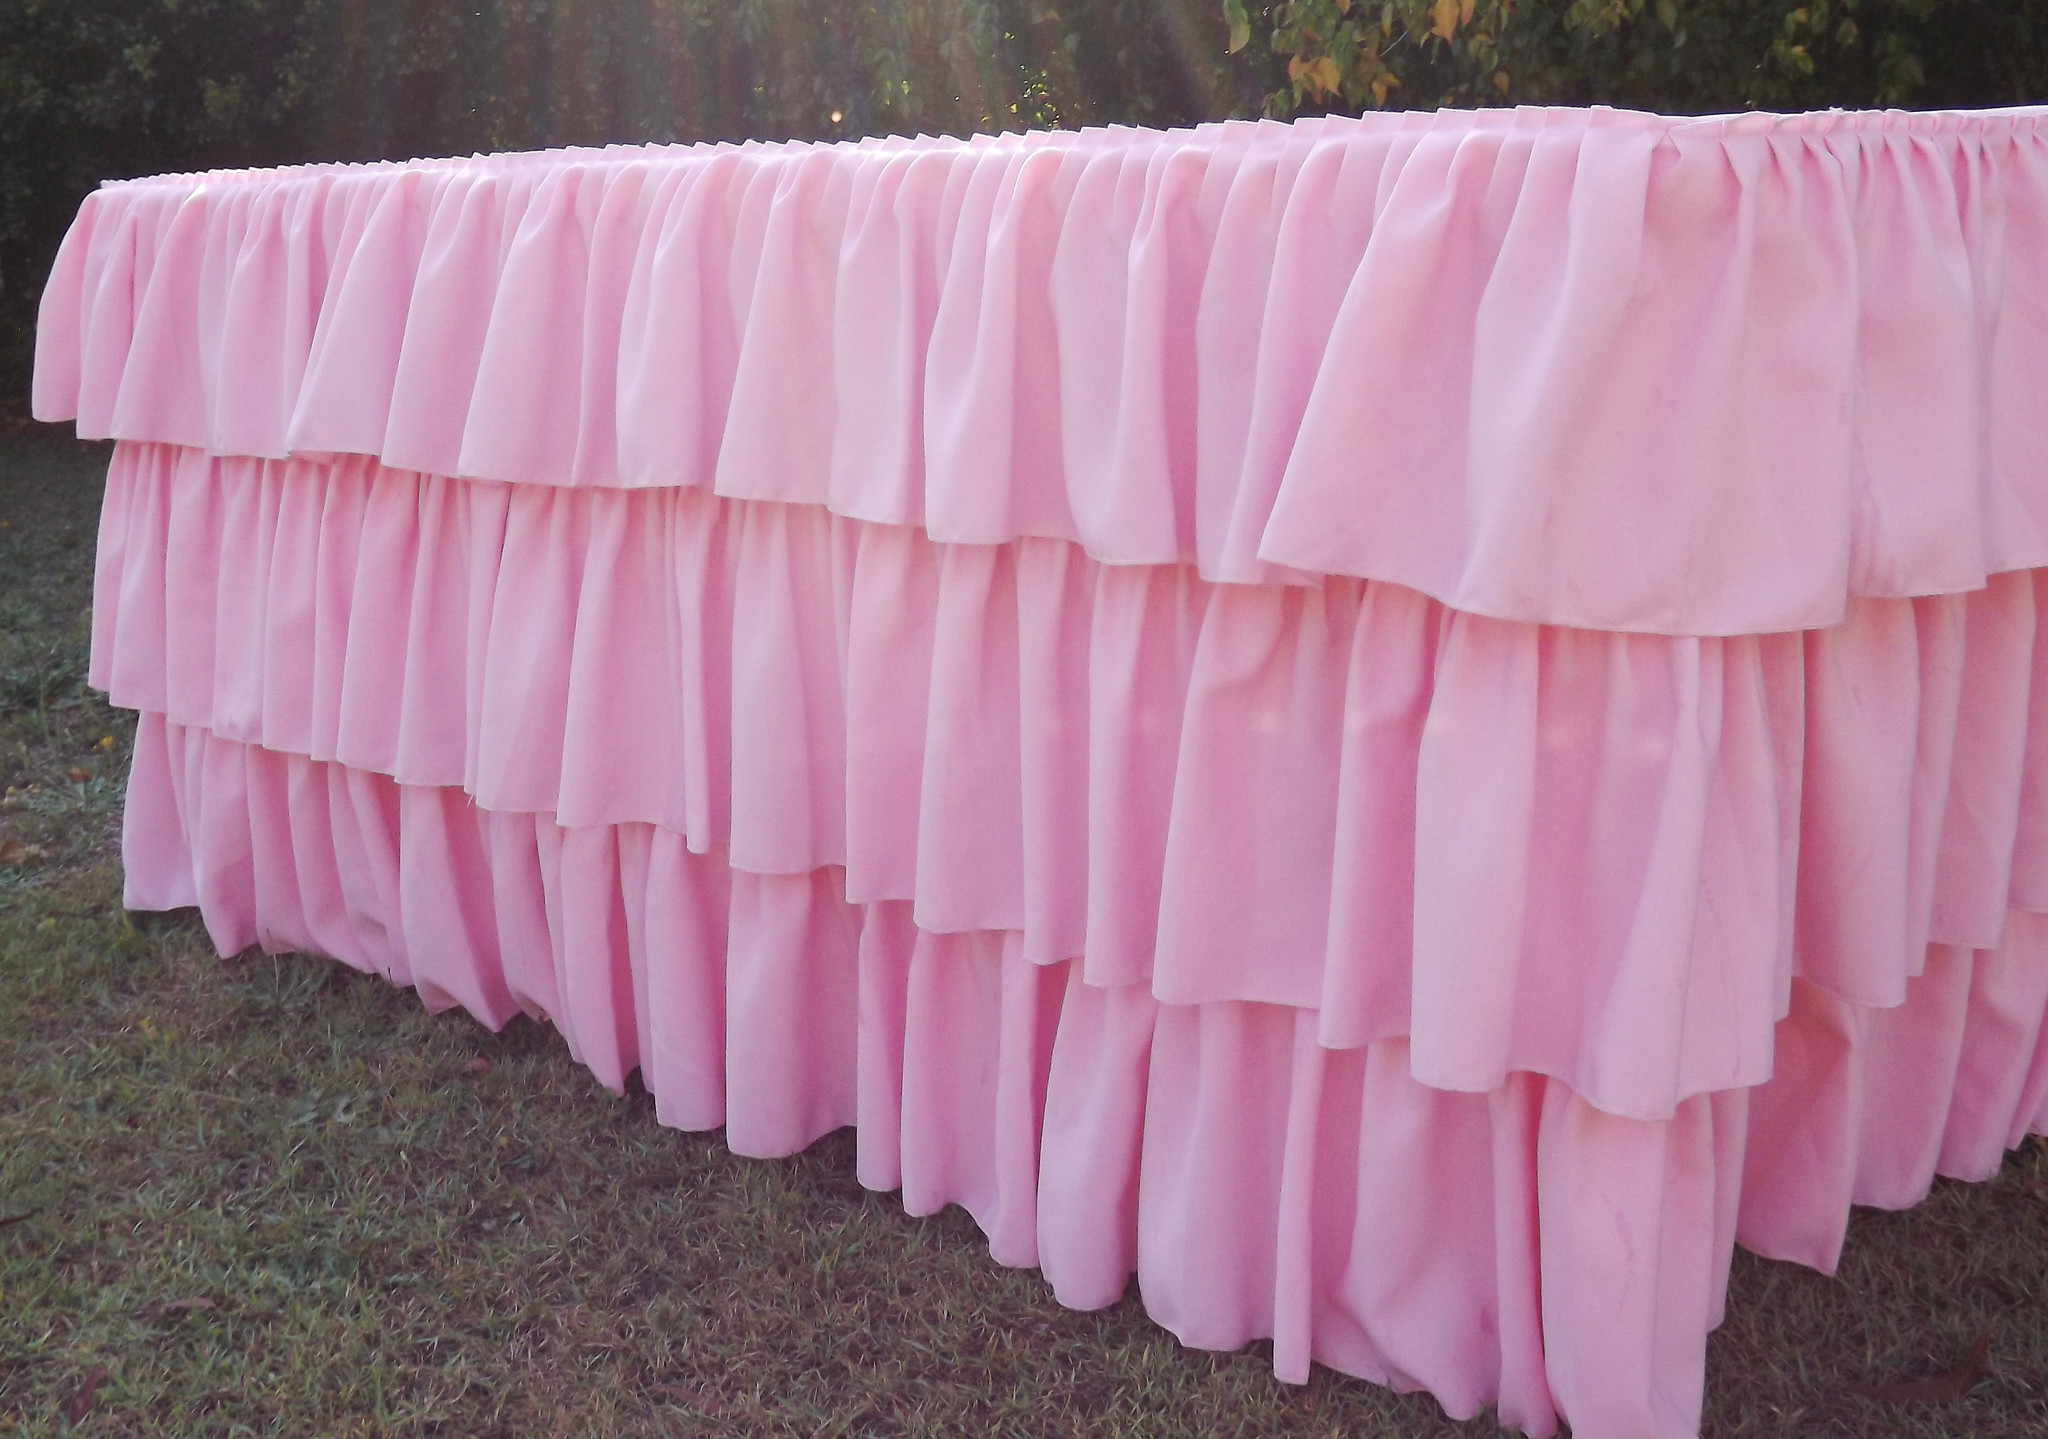 Pink ruffled tablecloth - Saffy and May